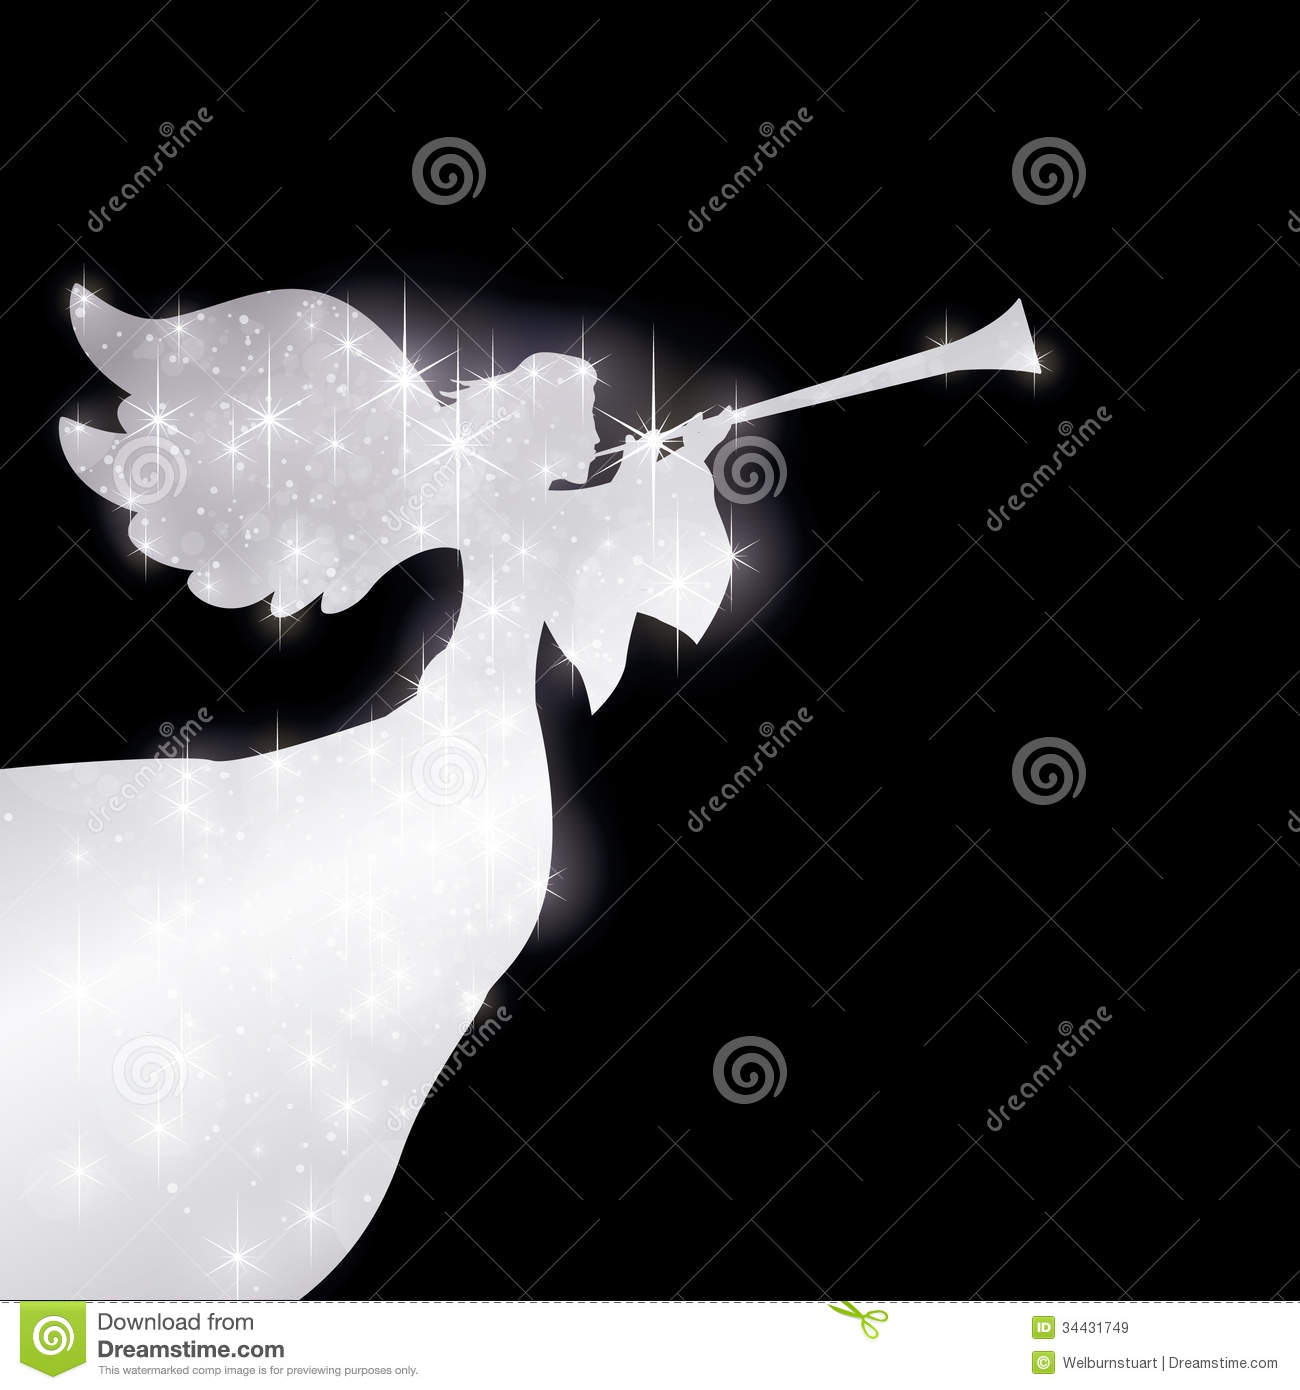 Starry Herald Angel Silver Royalty Free Stock Images - Image: 34431749